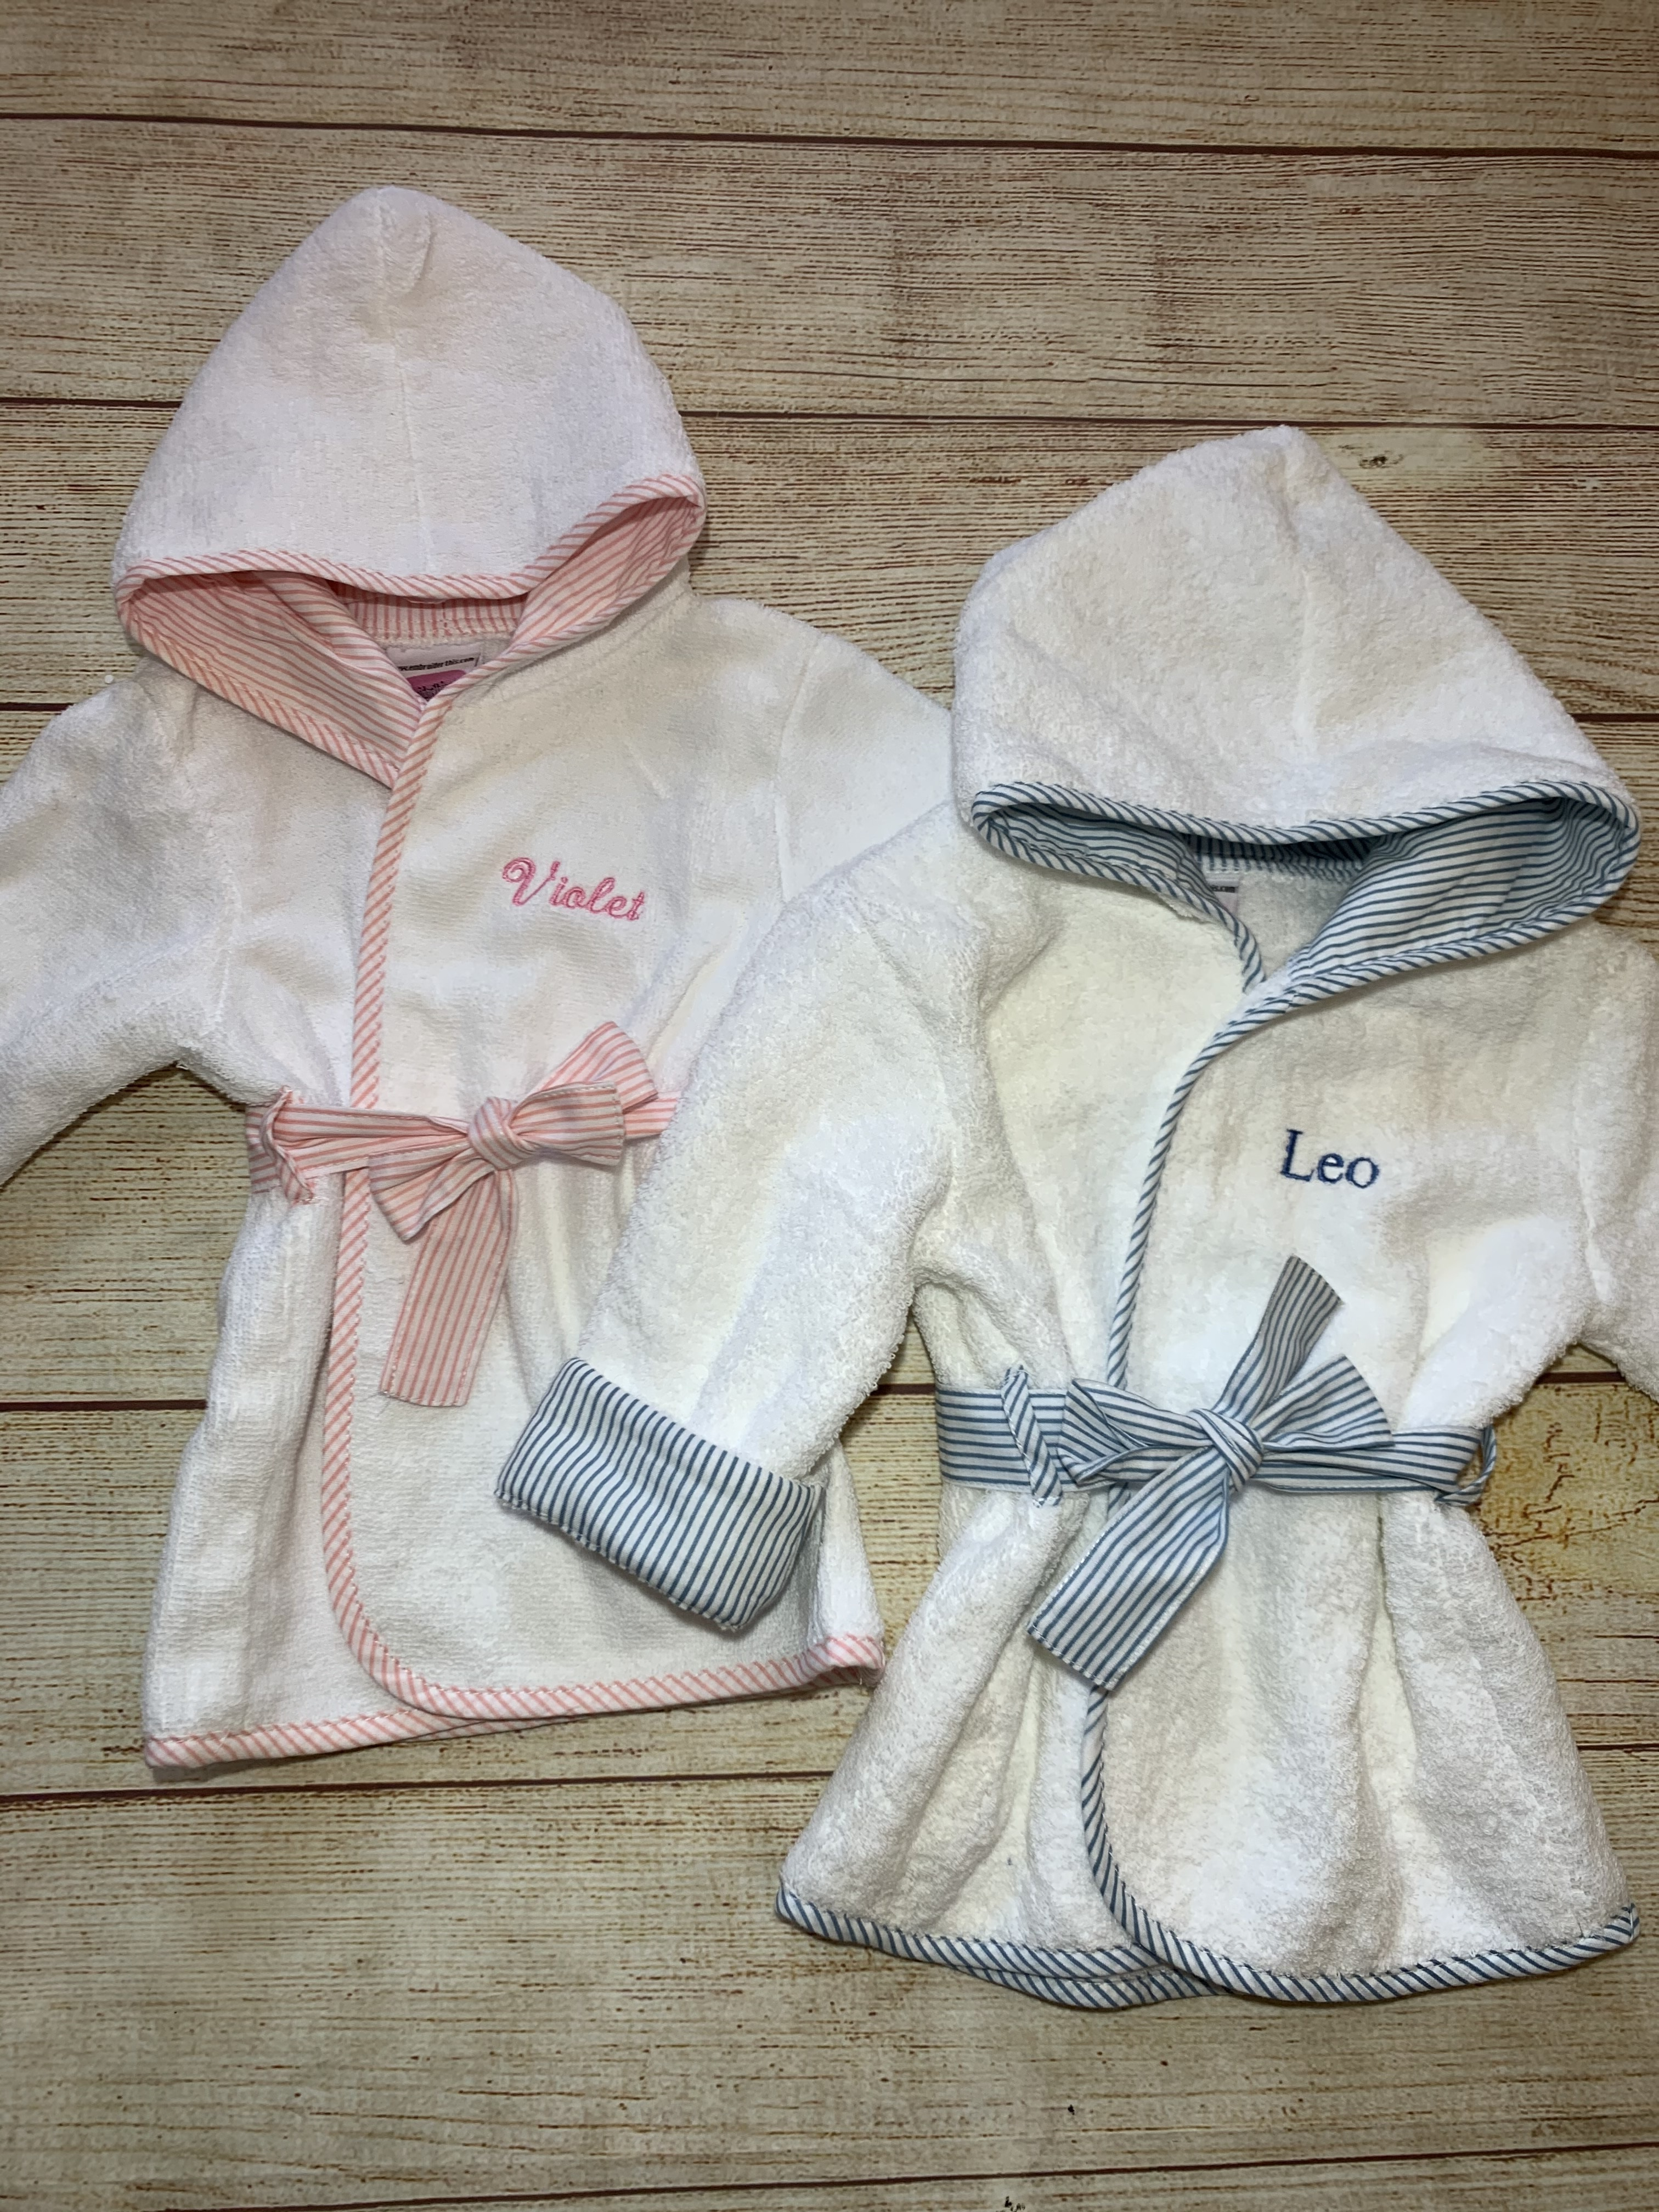 Bath time fun, wrap the baby up in our thirsty robes.  Pink or blue trim, embroidered name included  by Wicked Stitches Gifts